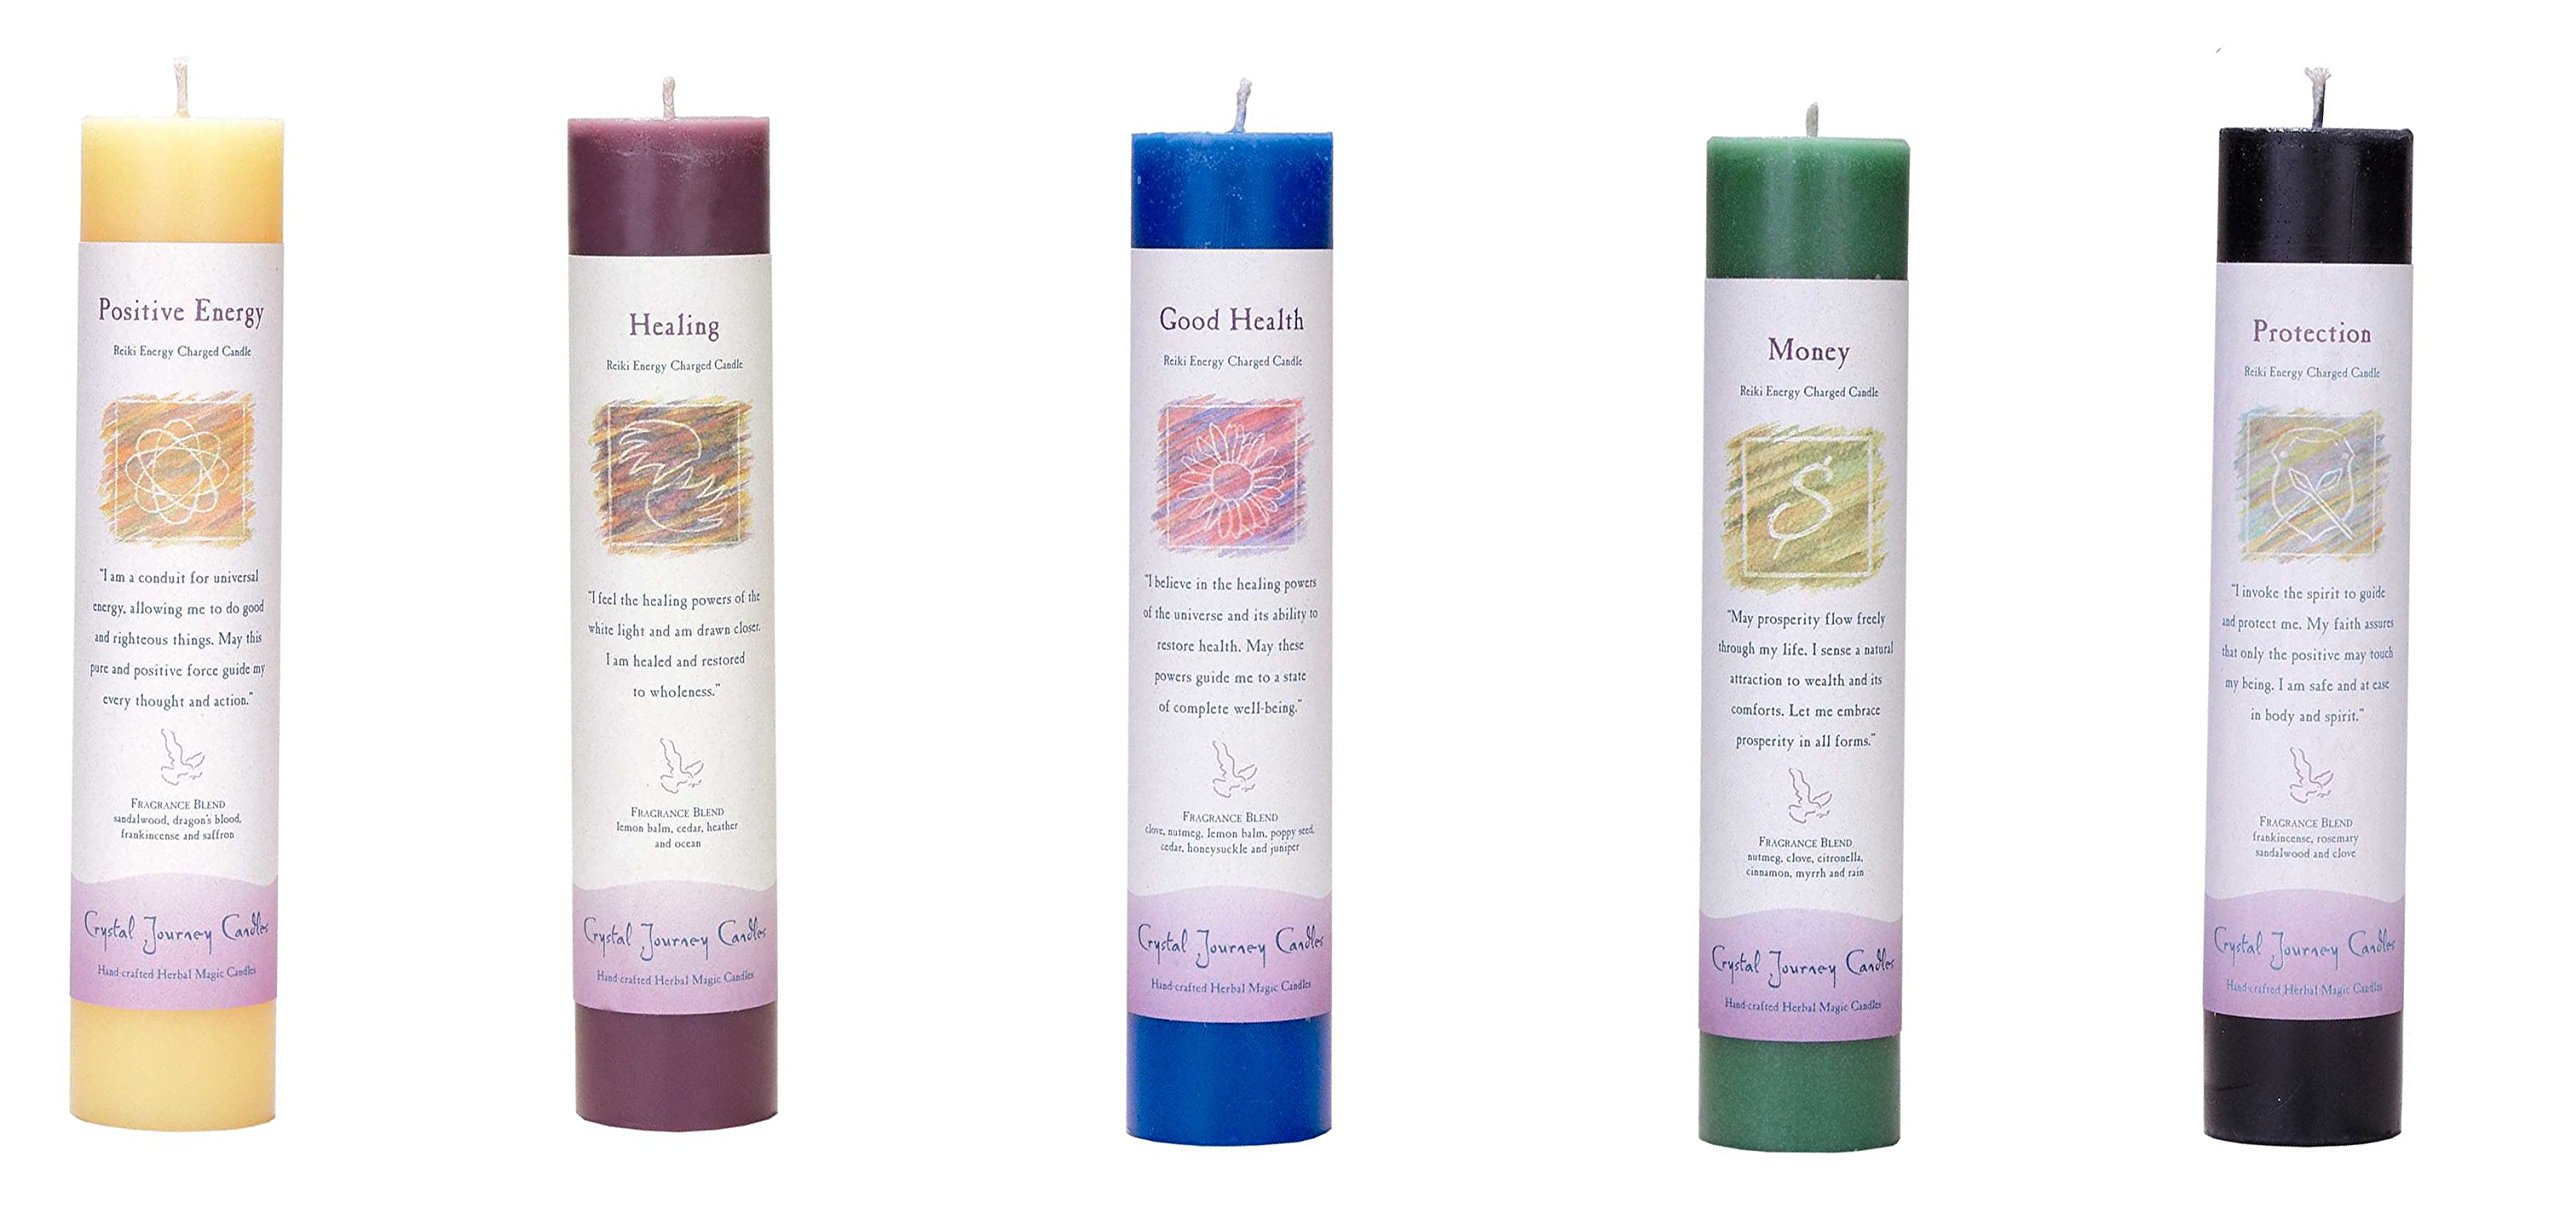 Crystal Journey Reiki Charged Herbal Magic Pillar Candle with Inspirational Labels - 5 Pack (Positive Energy, Healing, Good Health, Money, Protection) Each 7''x1.5'' handcrafted with lead-free materials